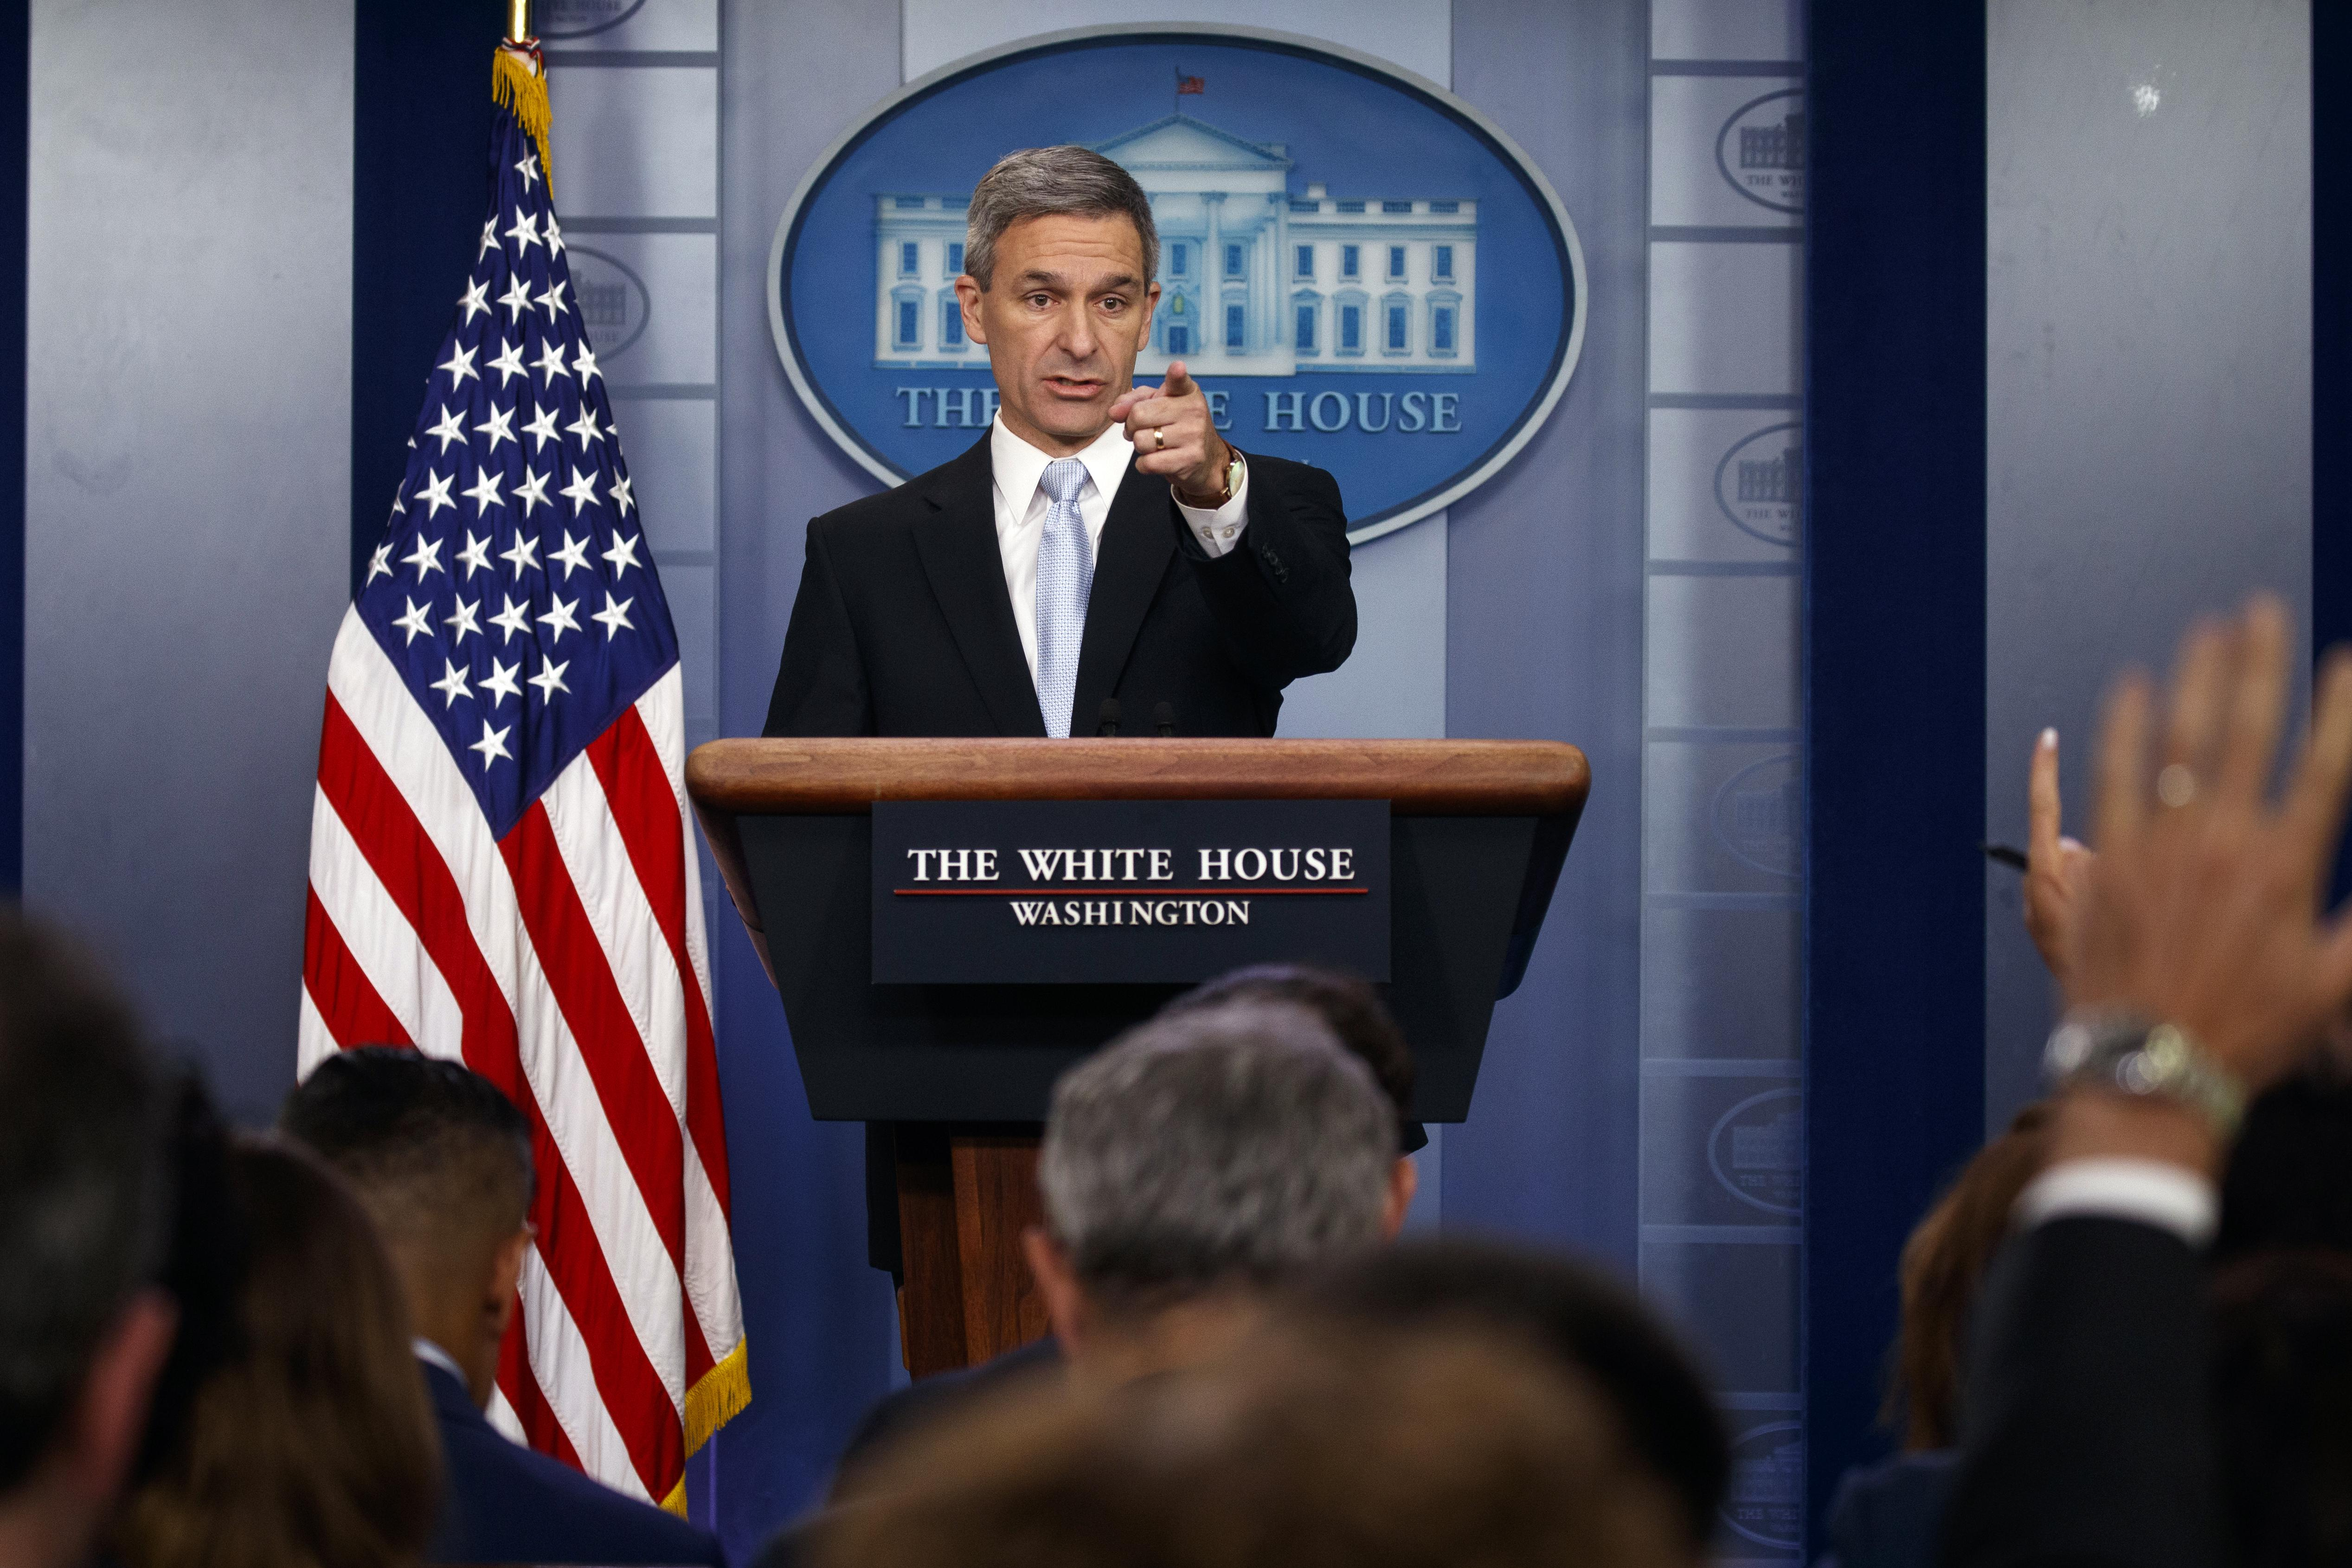 Ken Cuccinelli backed for Homeland Security chief by high-profile conservatives